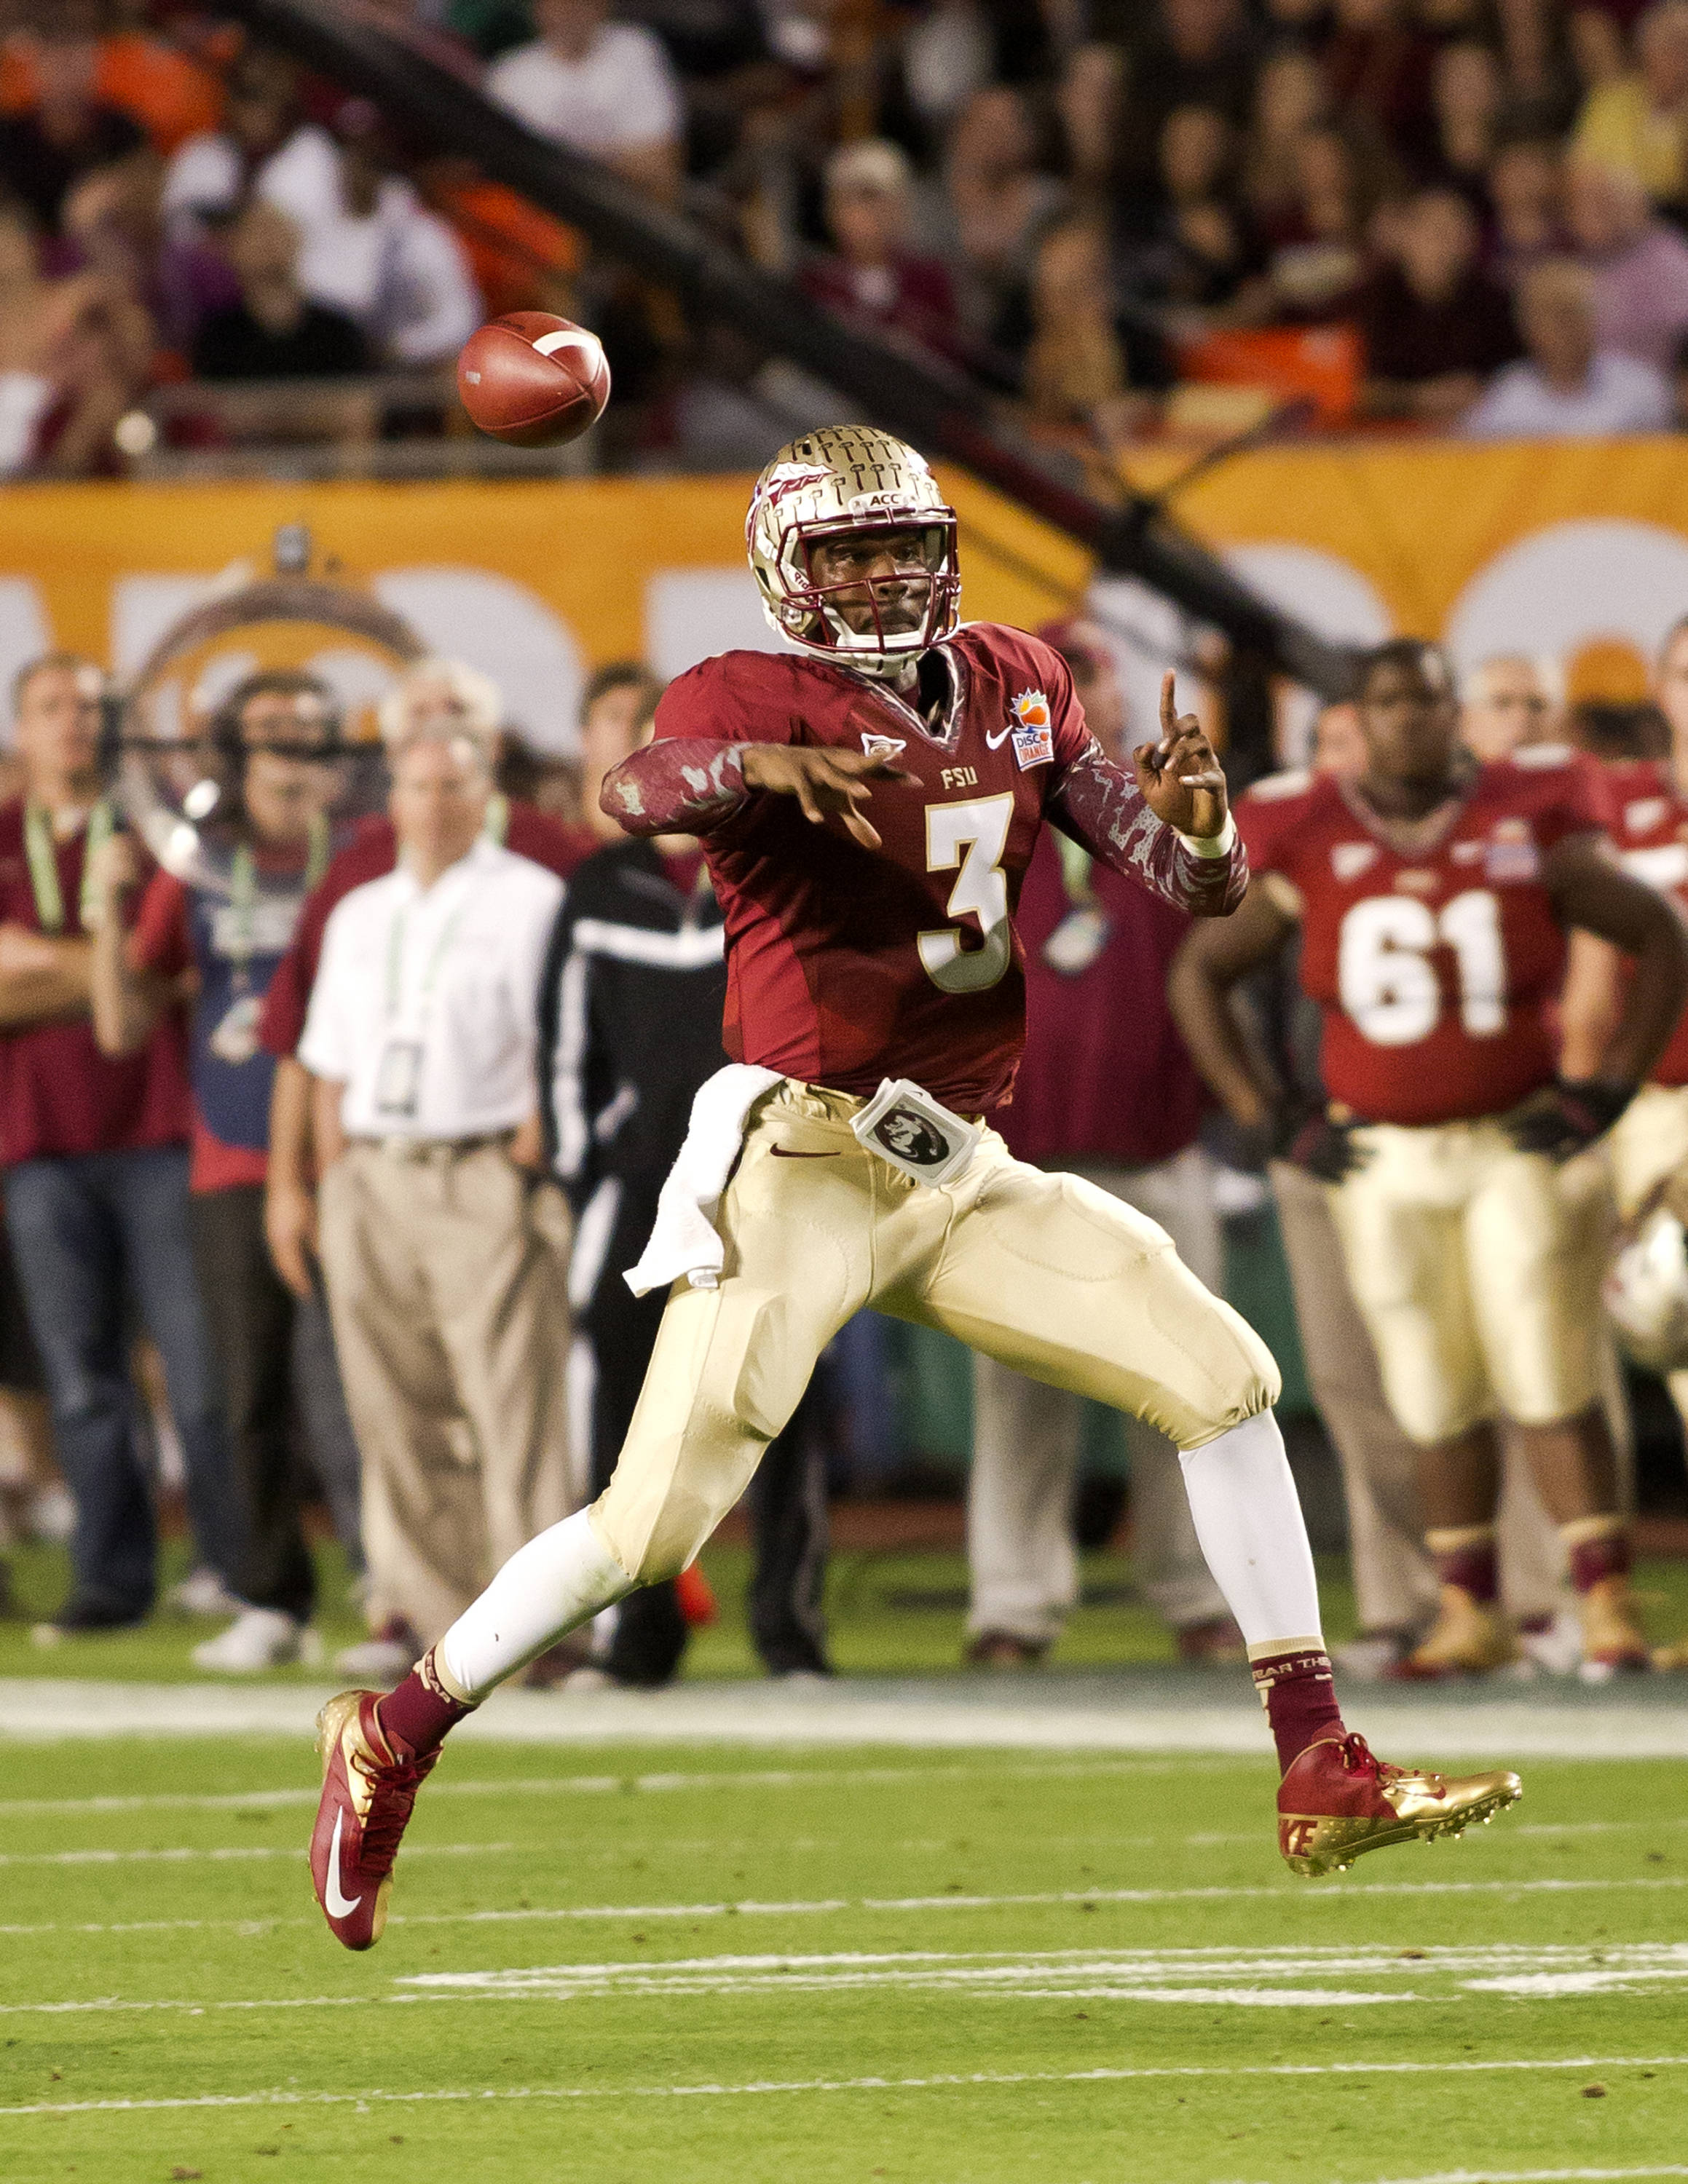 EJ Manuel (3), FSU vs No. Illinois, 01/01/13. (Photo by Steve Musco)